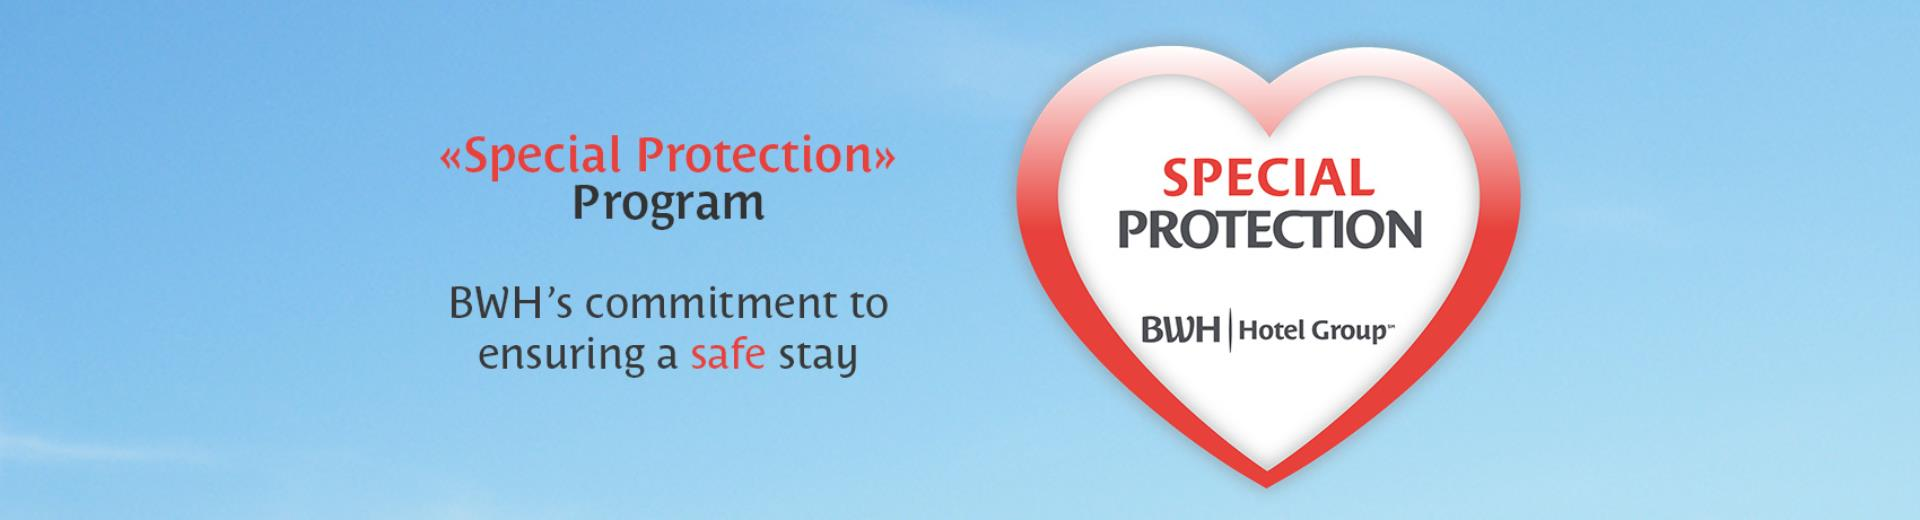 Special Protection - BW Plus Quid Hotel Venice Mestre